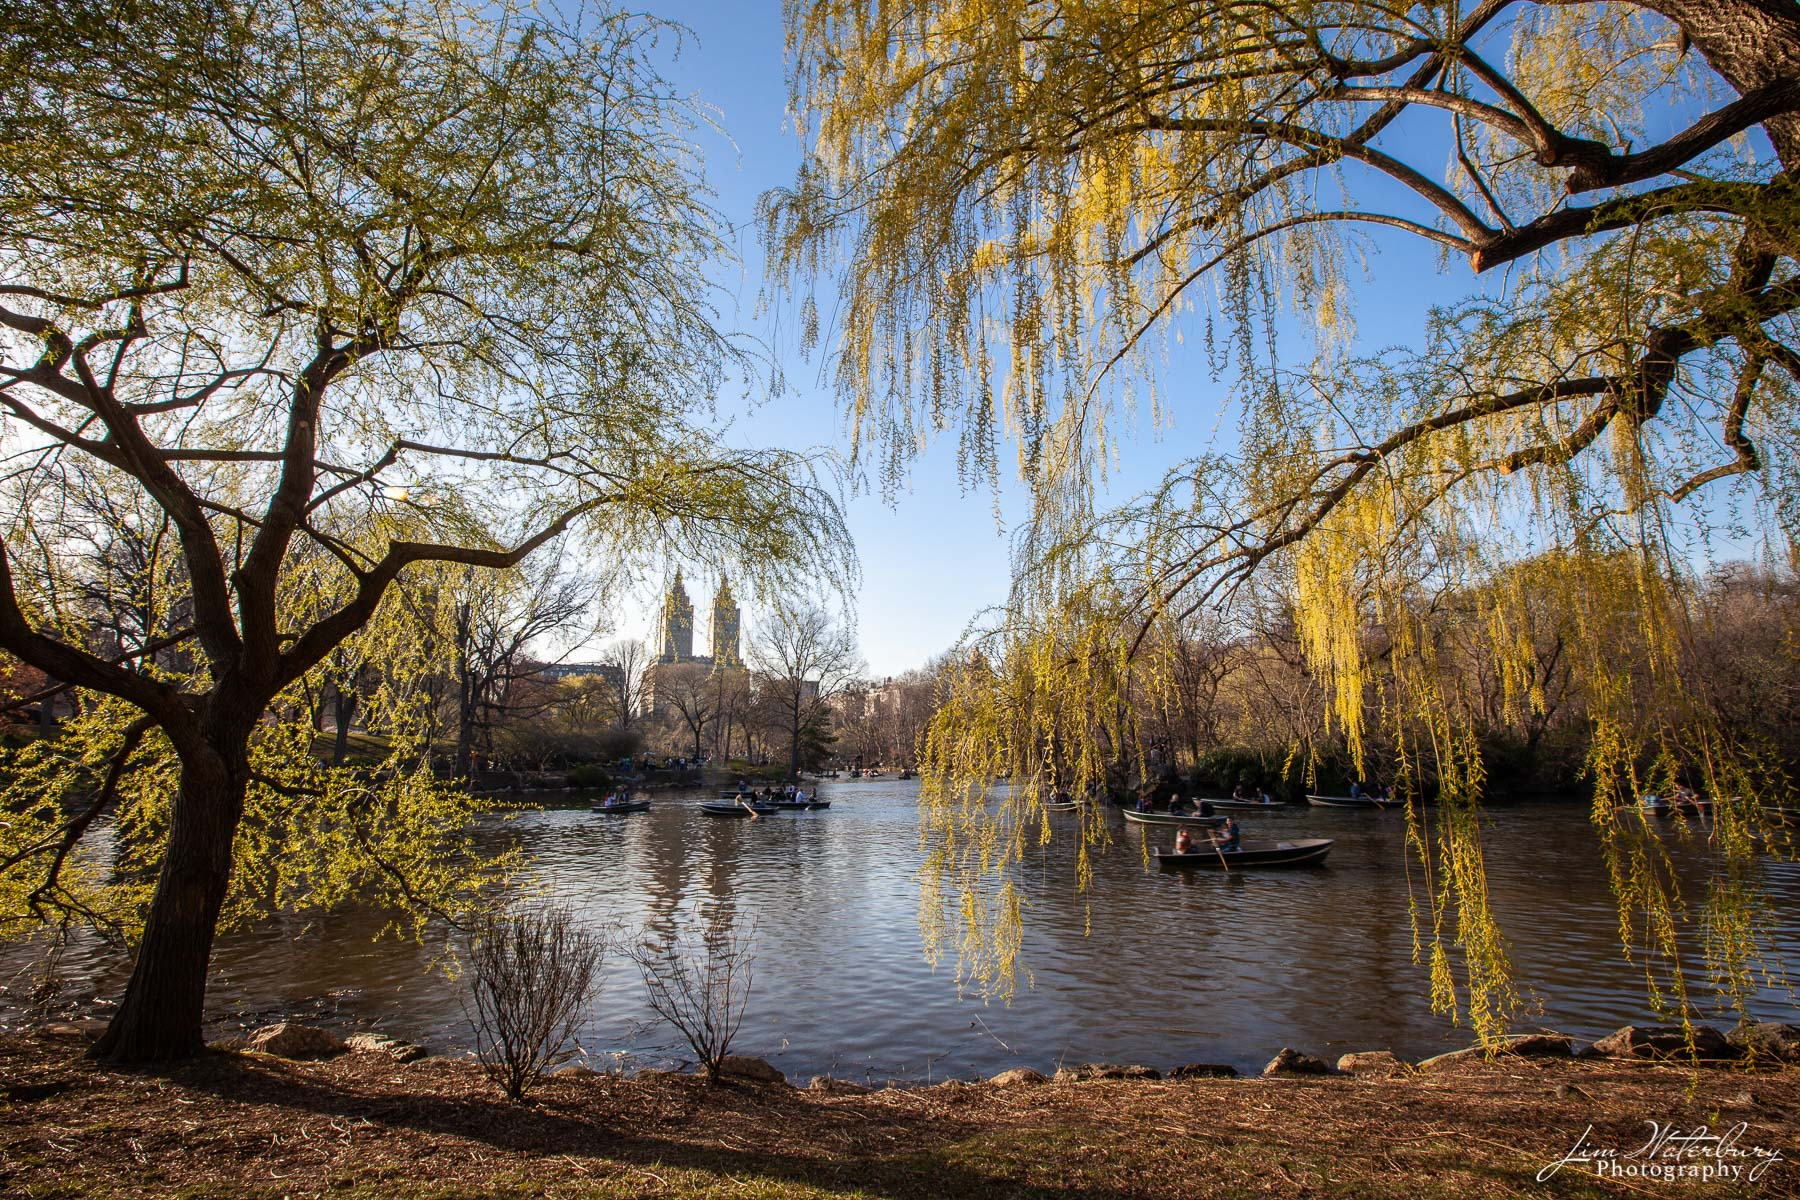 Rowboats float on the lake near the Loeb Boathouse in Central Park, New York, in spring, with the twin towers of The Eldorado...